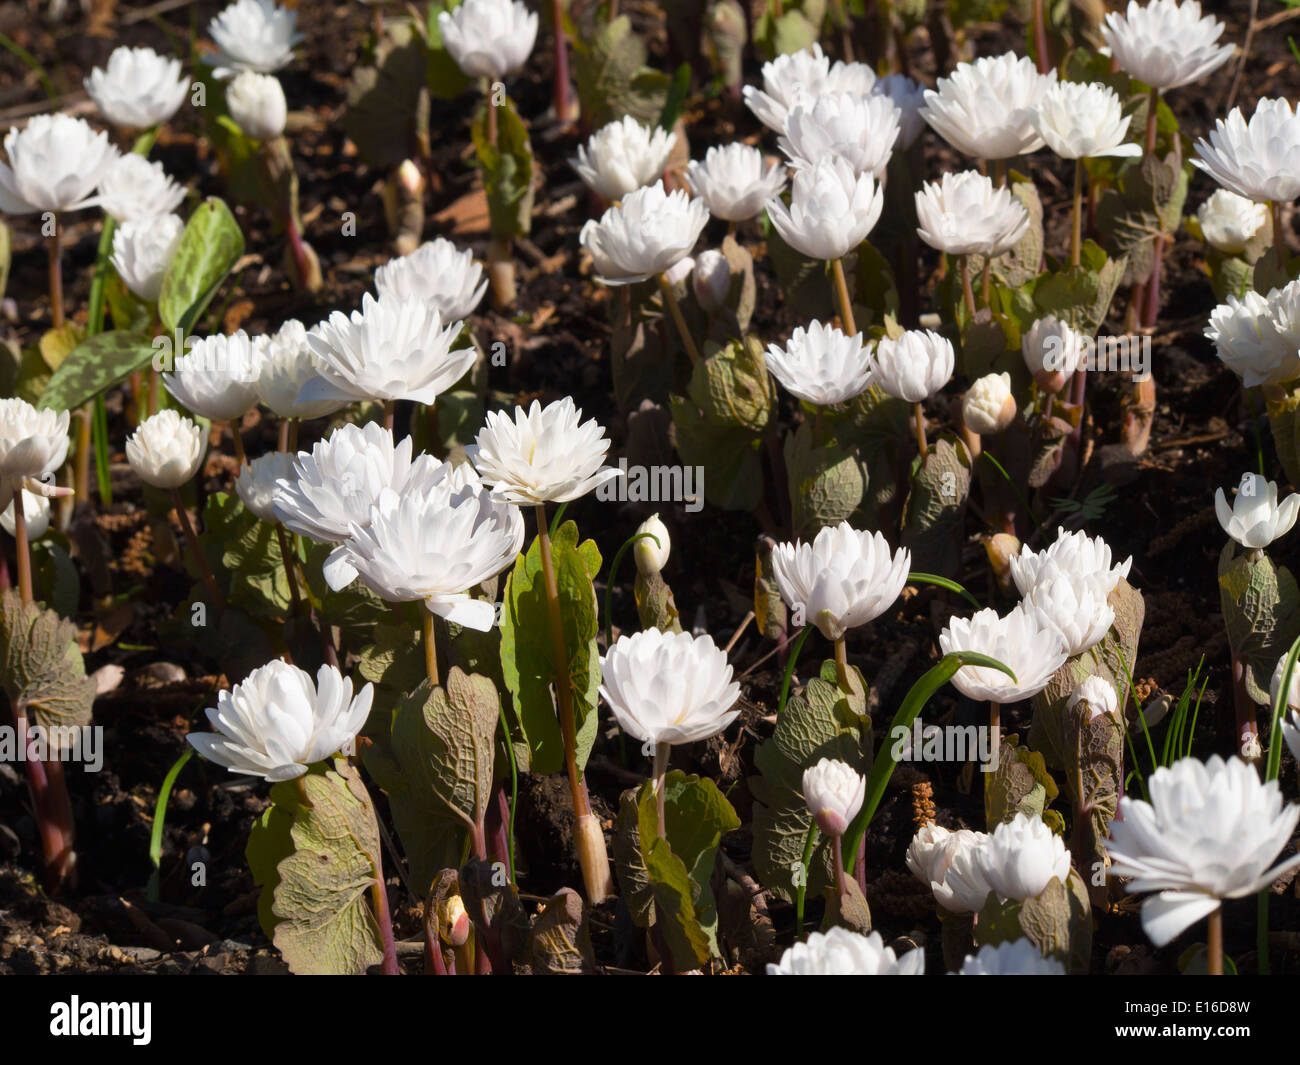 Sanguinaria canadensis, Multiplex, bloodroot, springtime impression from the botanical garden in Oslo Norway - Stock Image